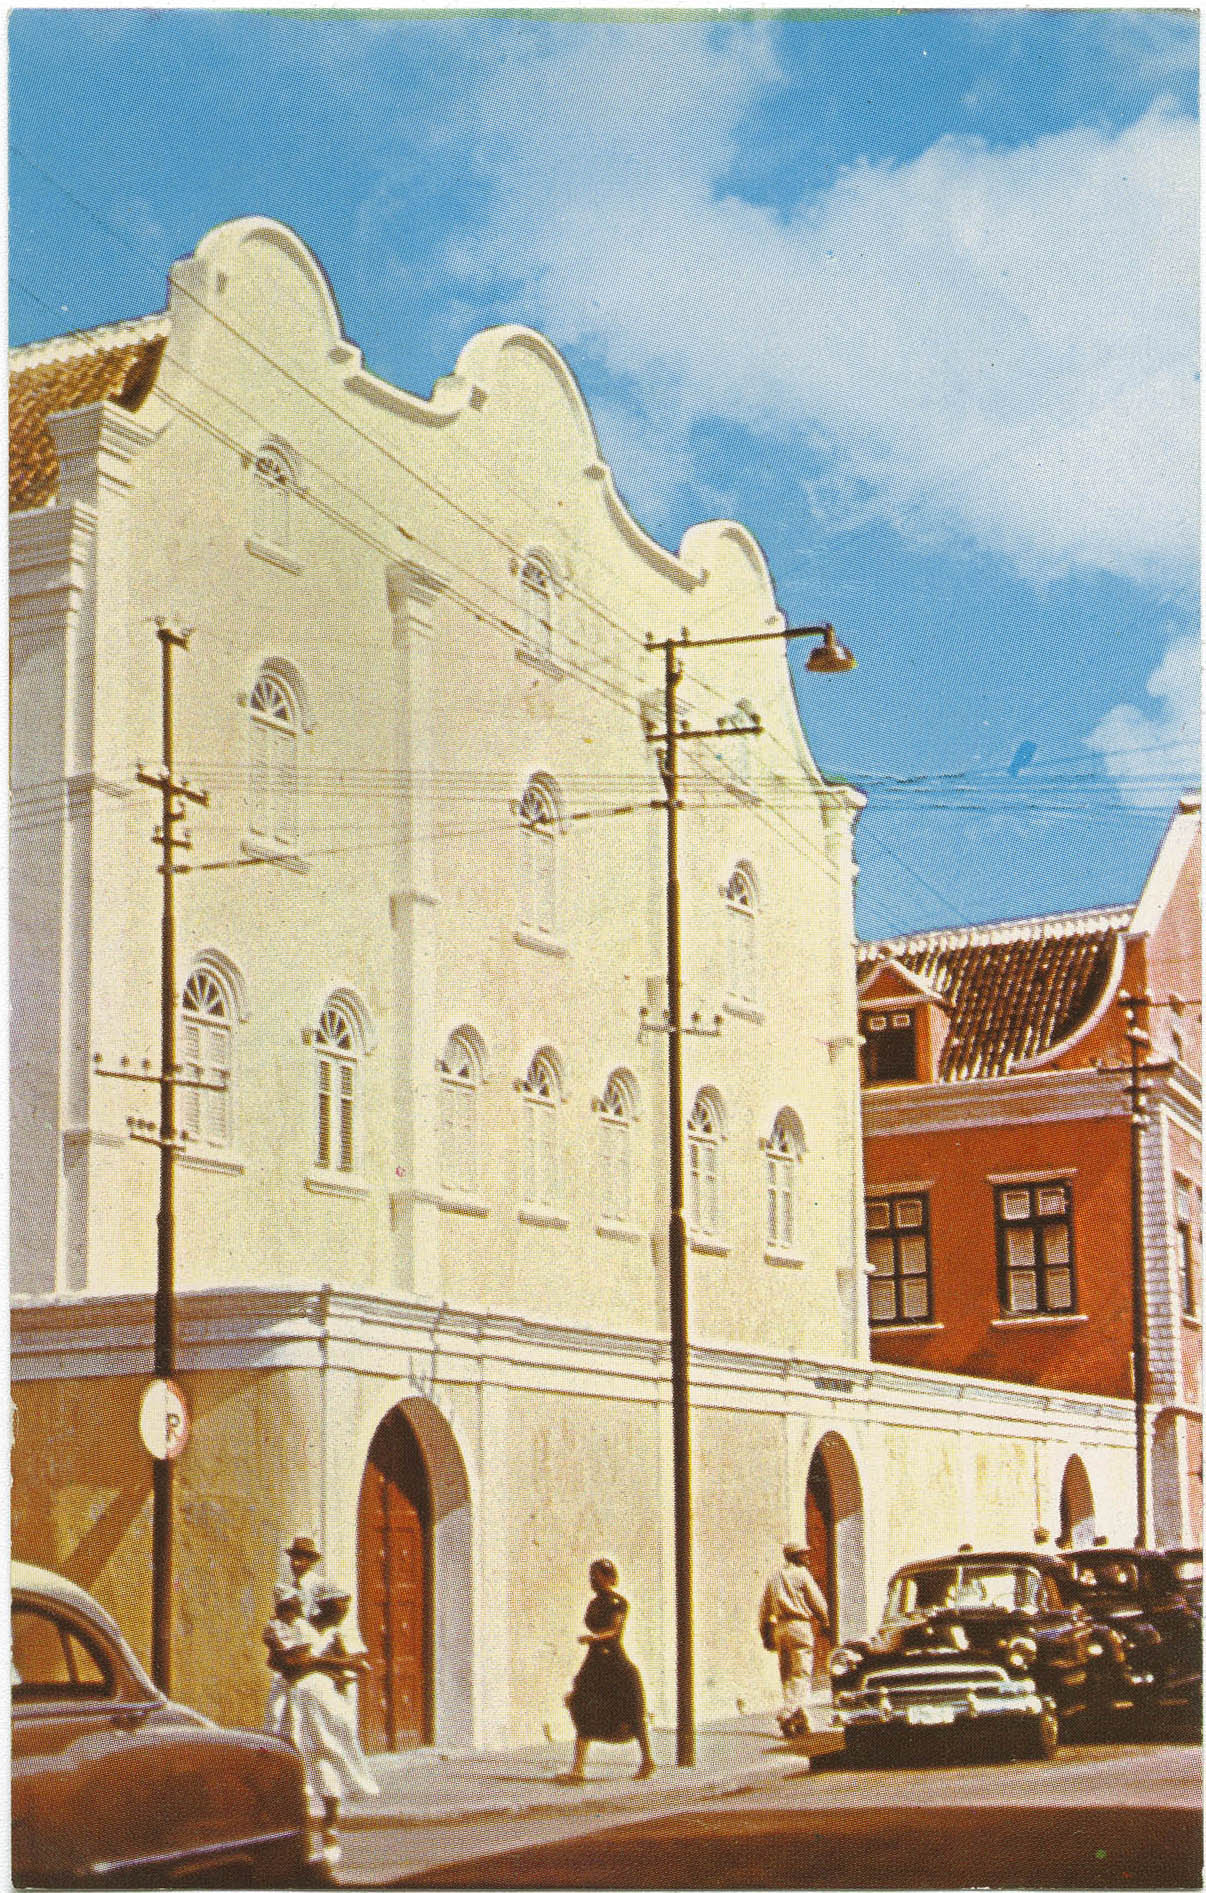 Willemstad, Curacao. Built in 1732, the  Mikve Israel Synagogue on Columbusstraat is the oldest Jewish house of worship in the Western Hemisphere.